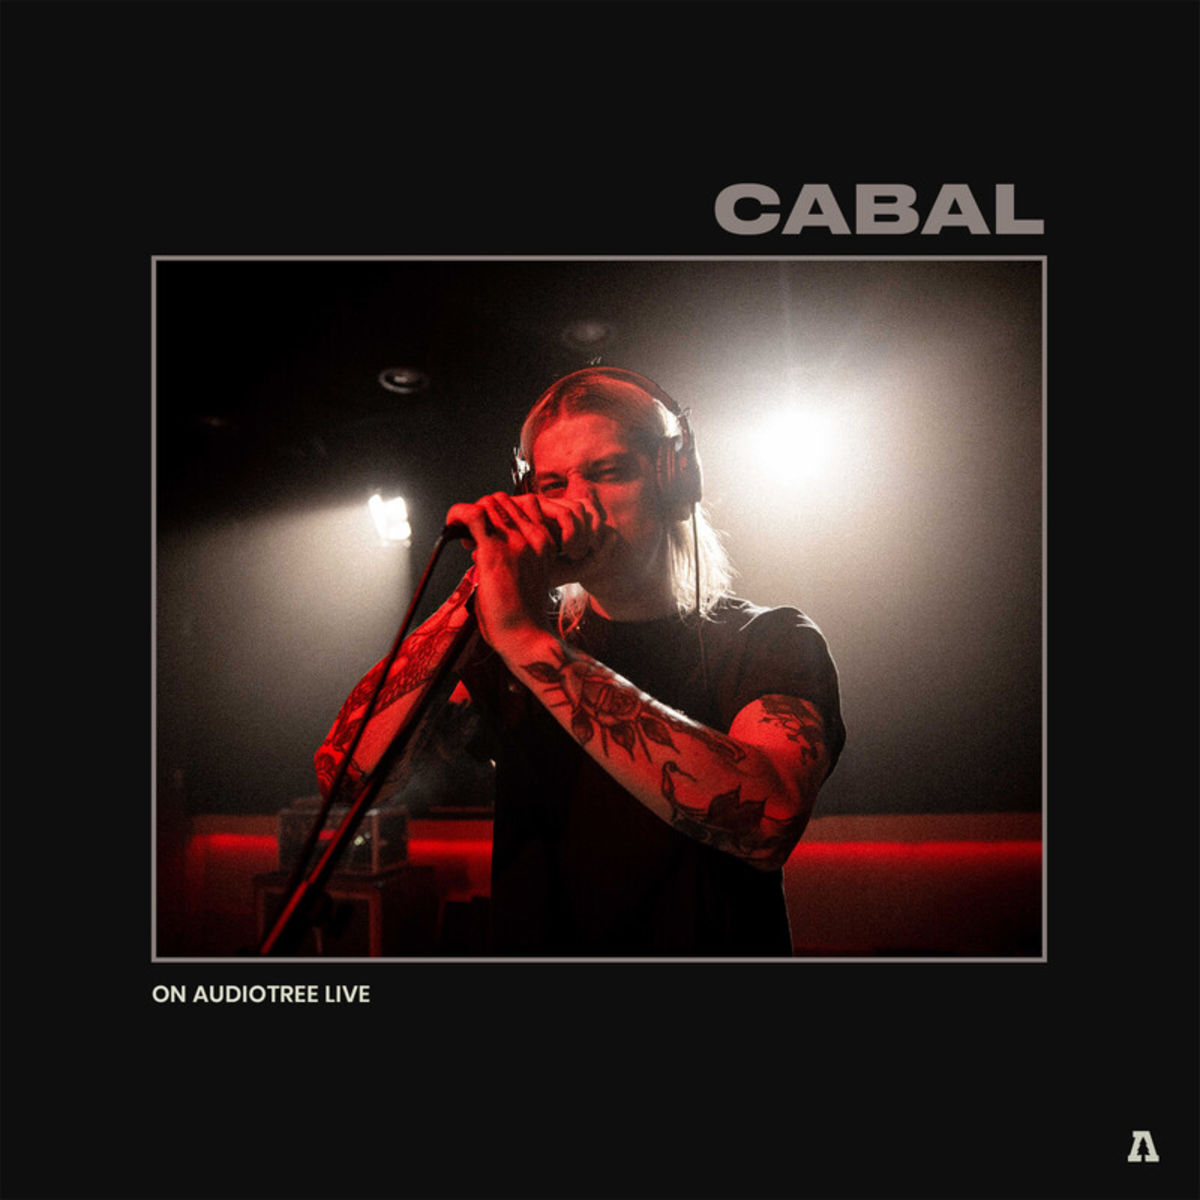 Cabal - Cabal on Audiotree Live [EP] (2020)